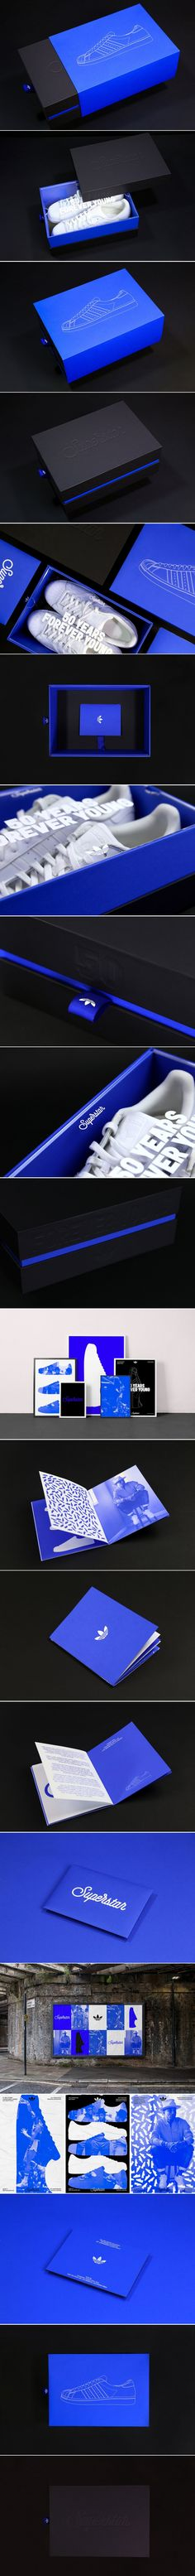 We Love This Bold Packaging and Branding Concept For Adidas Superstar's 50th Anniversary — The Dieline   Packaging & Branding Design & Innovation News